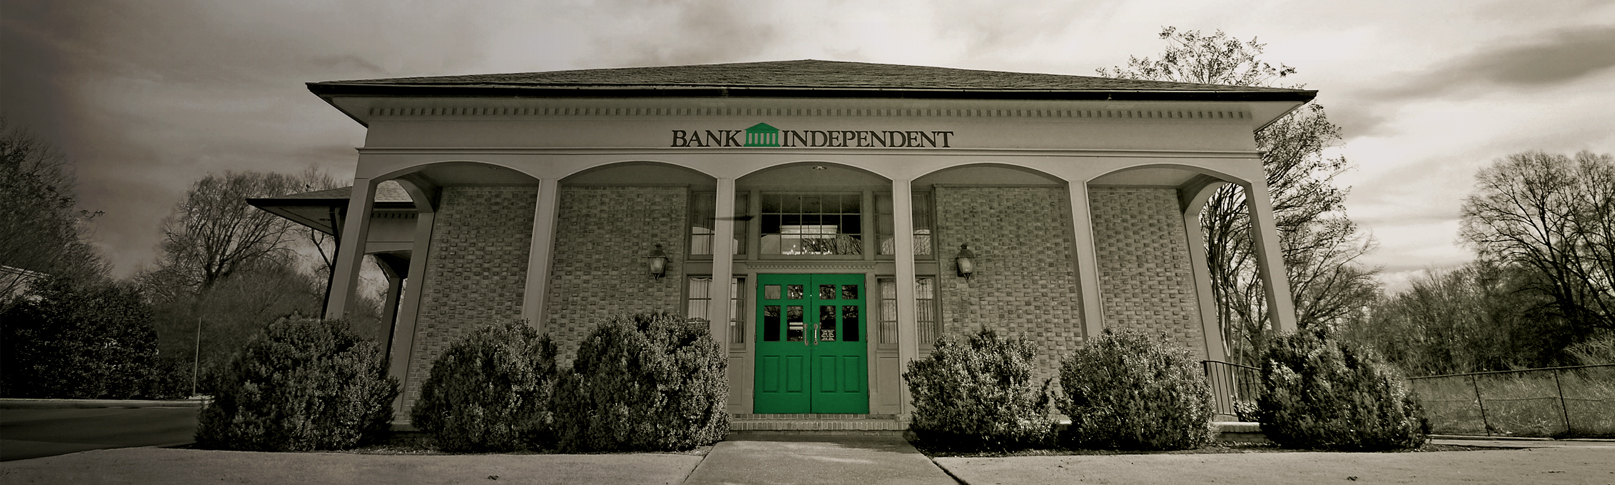 Bank Independent | Our Story, Mission, Vision, Values and